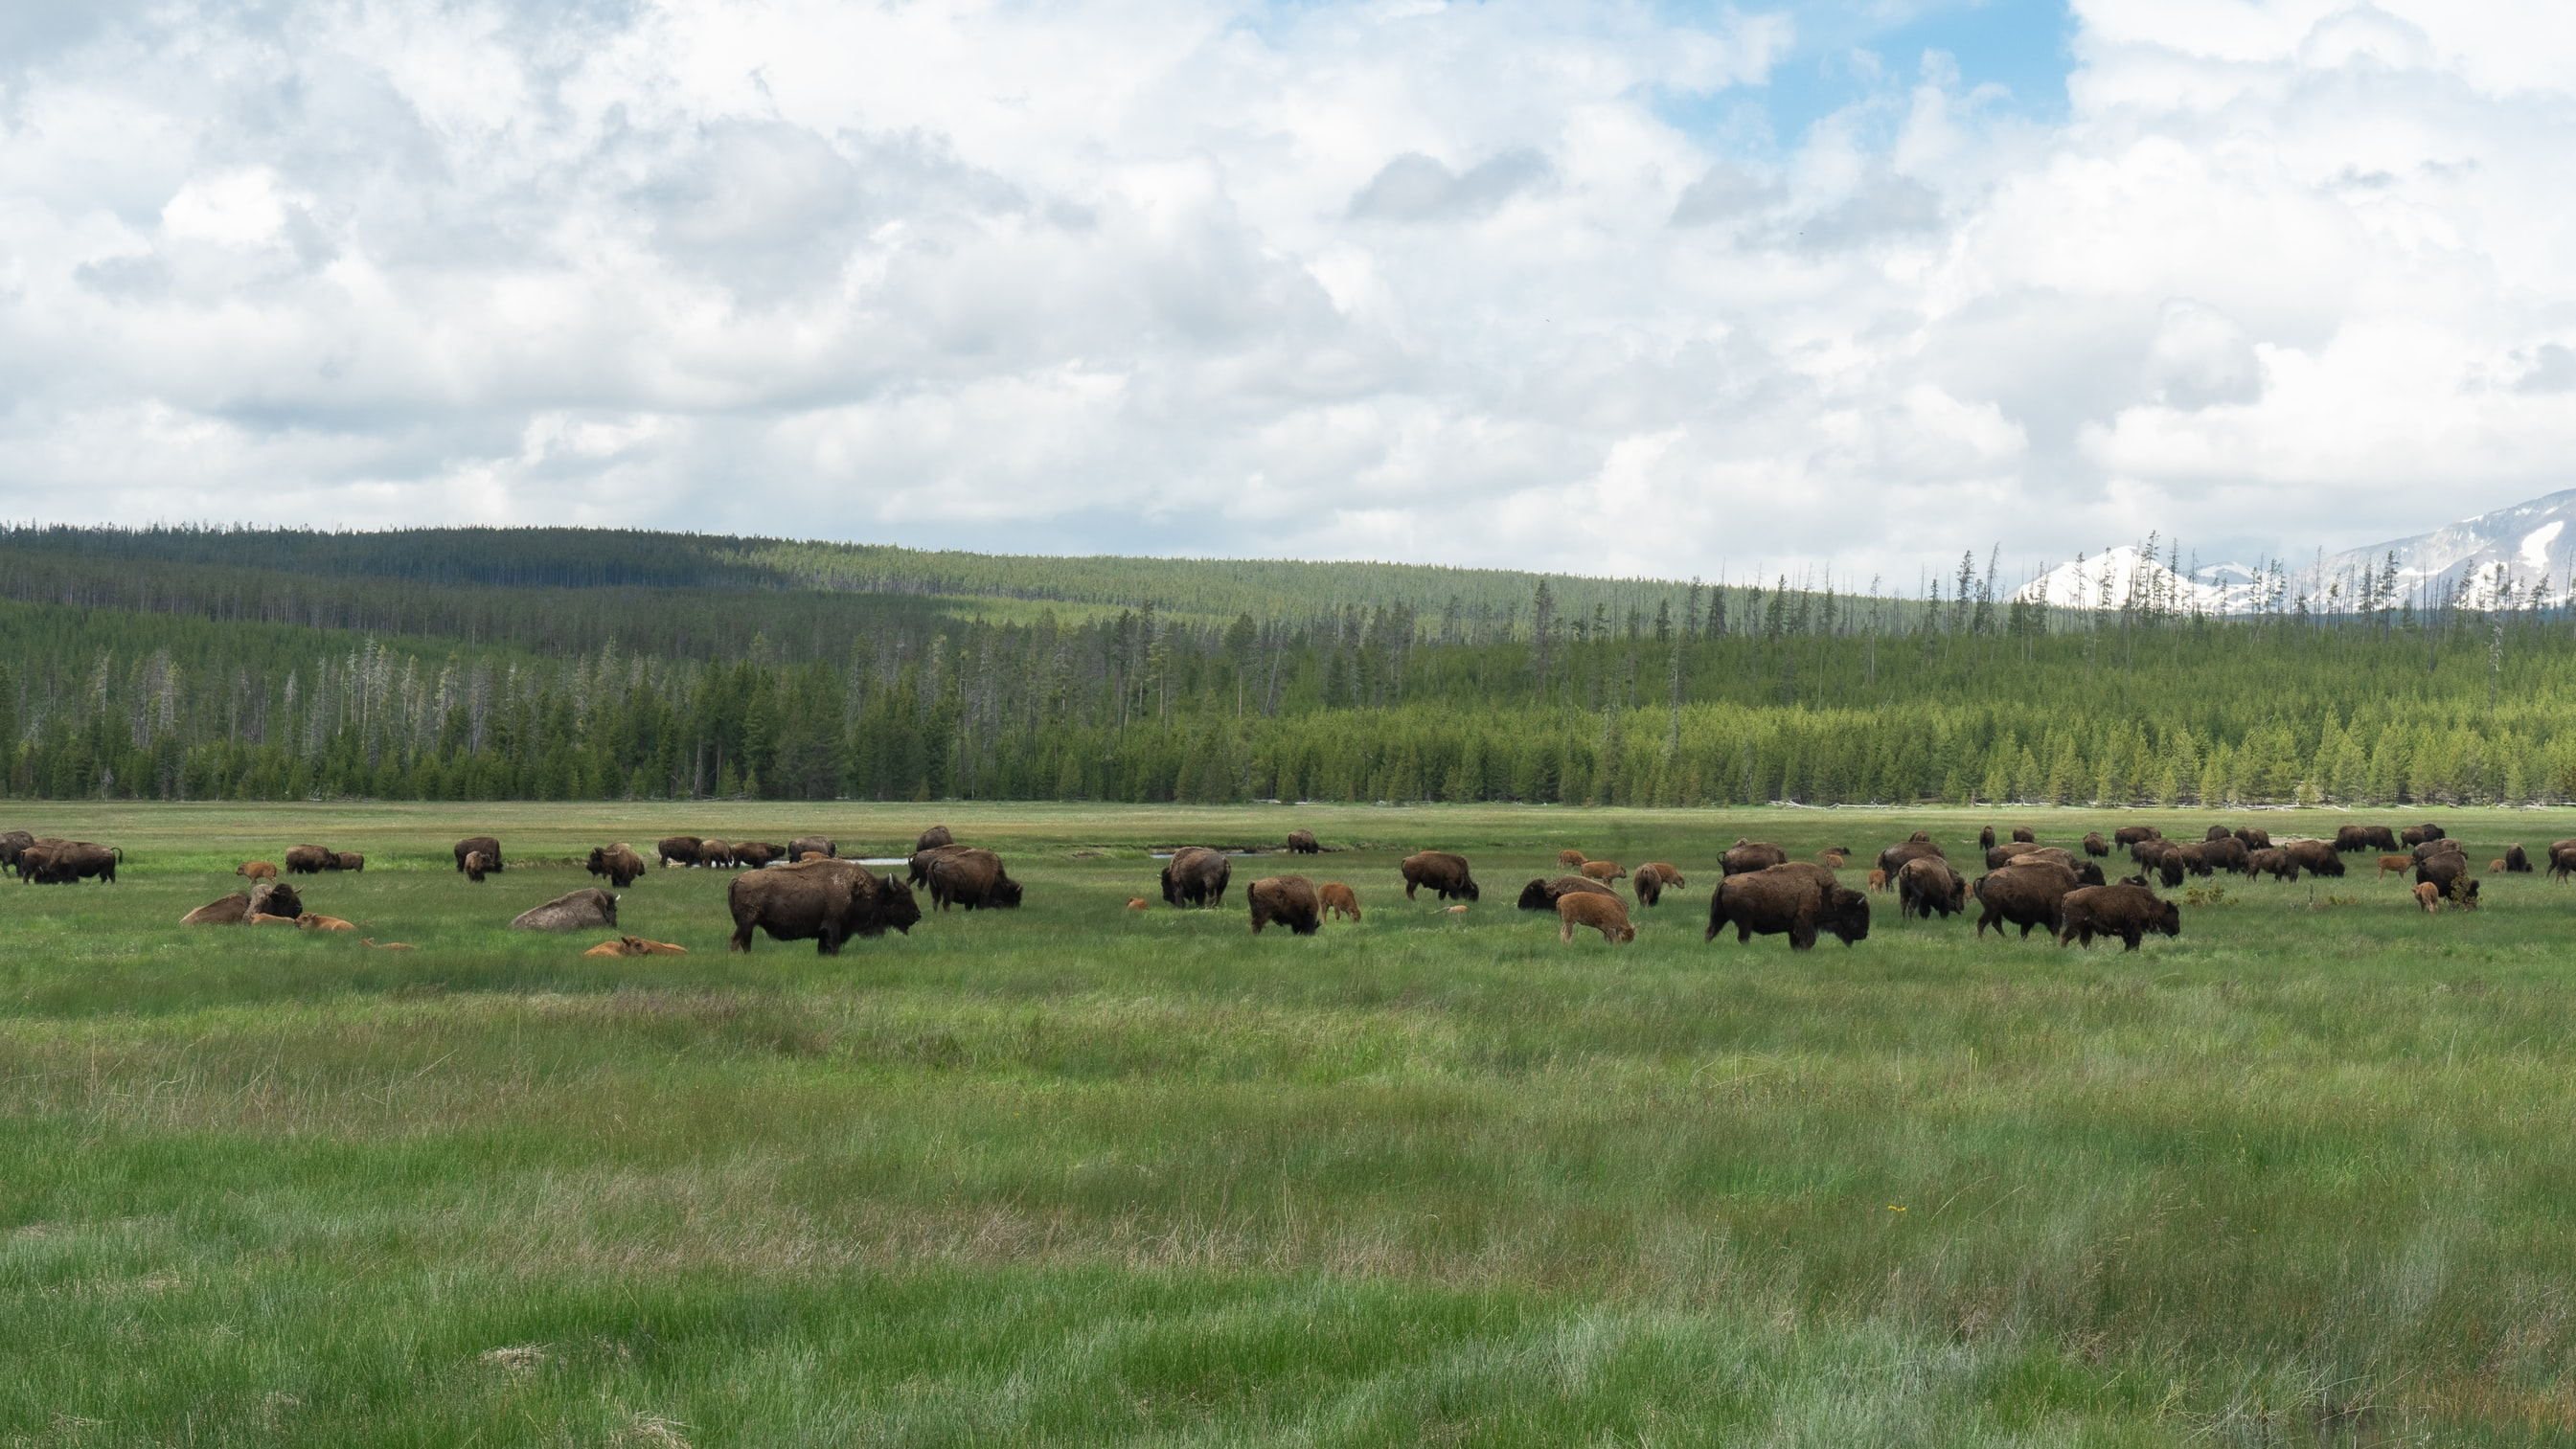 Challenges For Rotational Grazing Practice: Views From Non-Adopters Across the Great Plains, USA